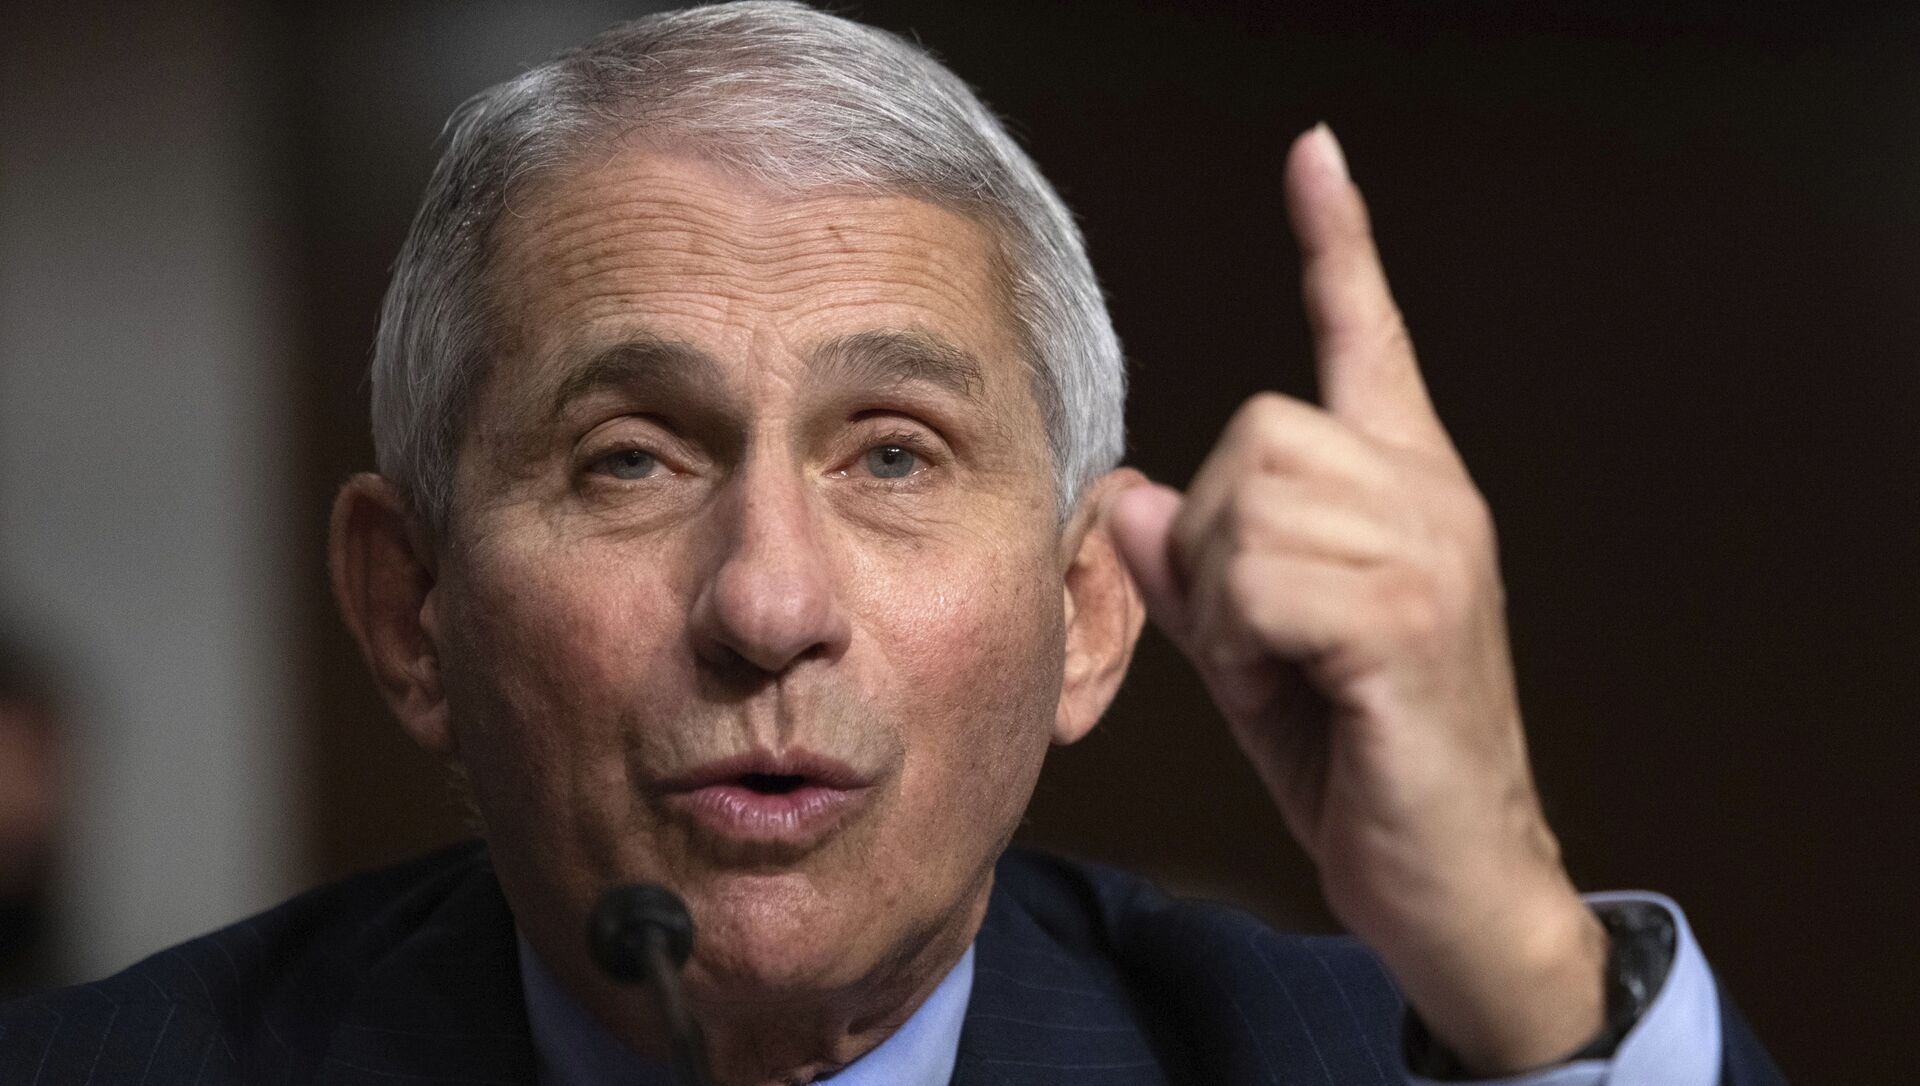 Dr. Anthony Fauci, Director of the National Institute of Allergy and Infectious Diseases at the National Institutes of Health, testifies during a Senate Senate Health, Education, Labor, and Pensions Committee Hearing on the federal government response to COVID-19 on Capitol Hill Wednesday, Sept. 23, 2020, in Washington - Sputnik International, 1920, 28.07.2021